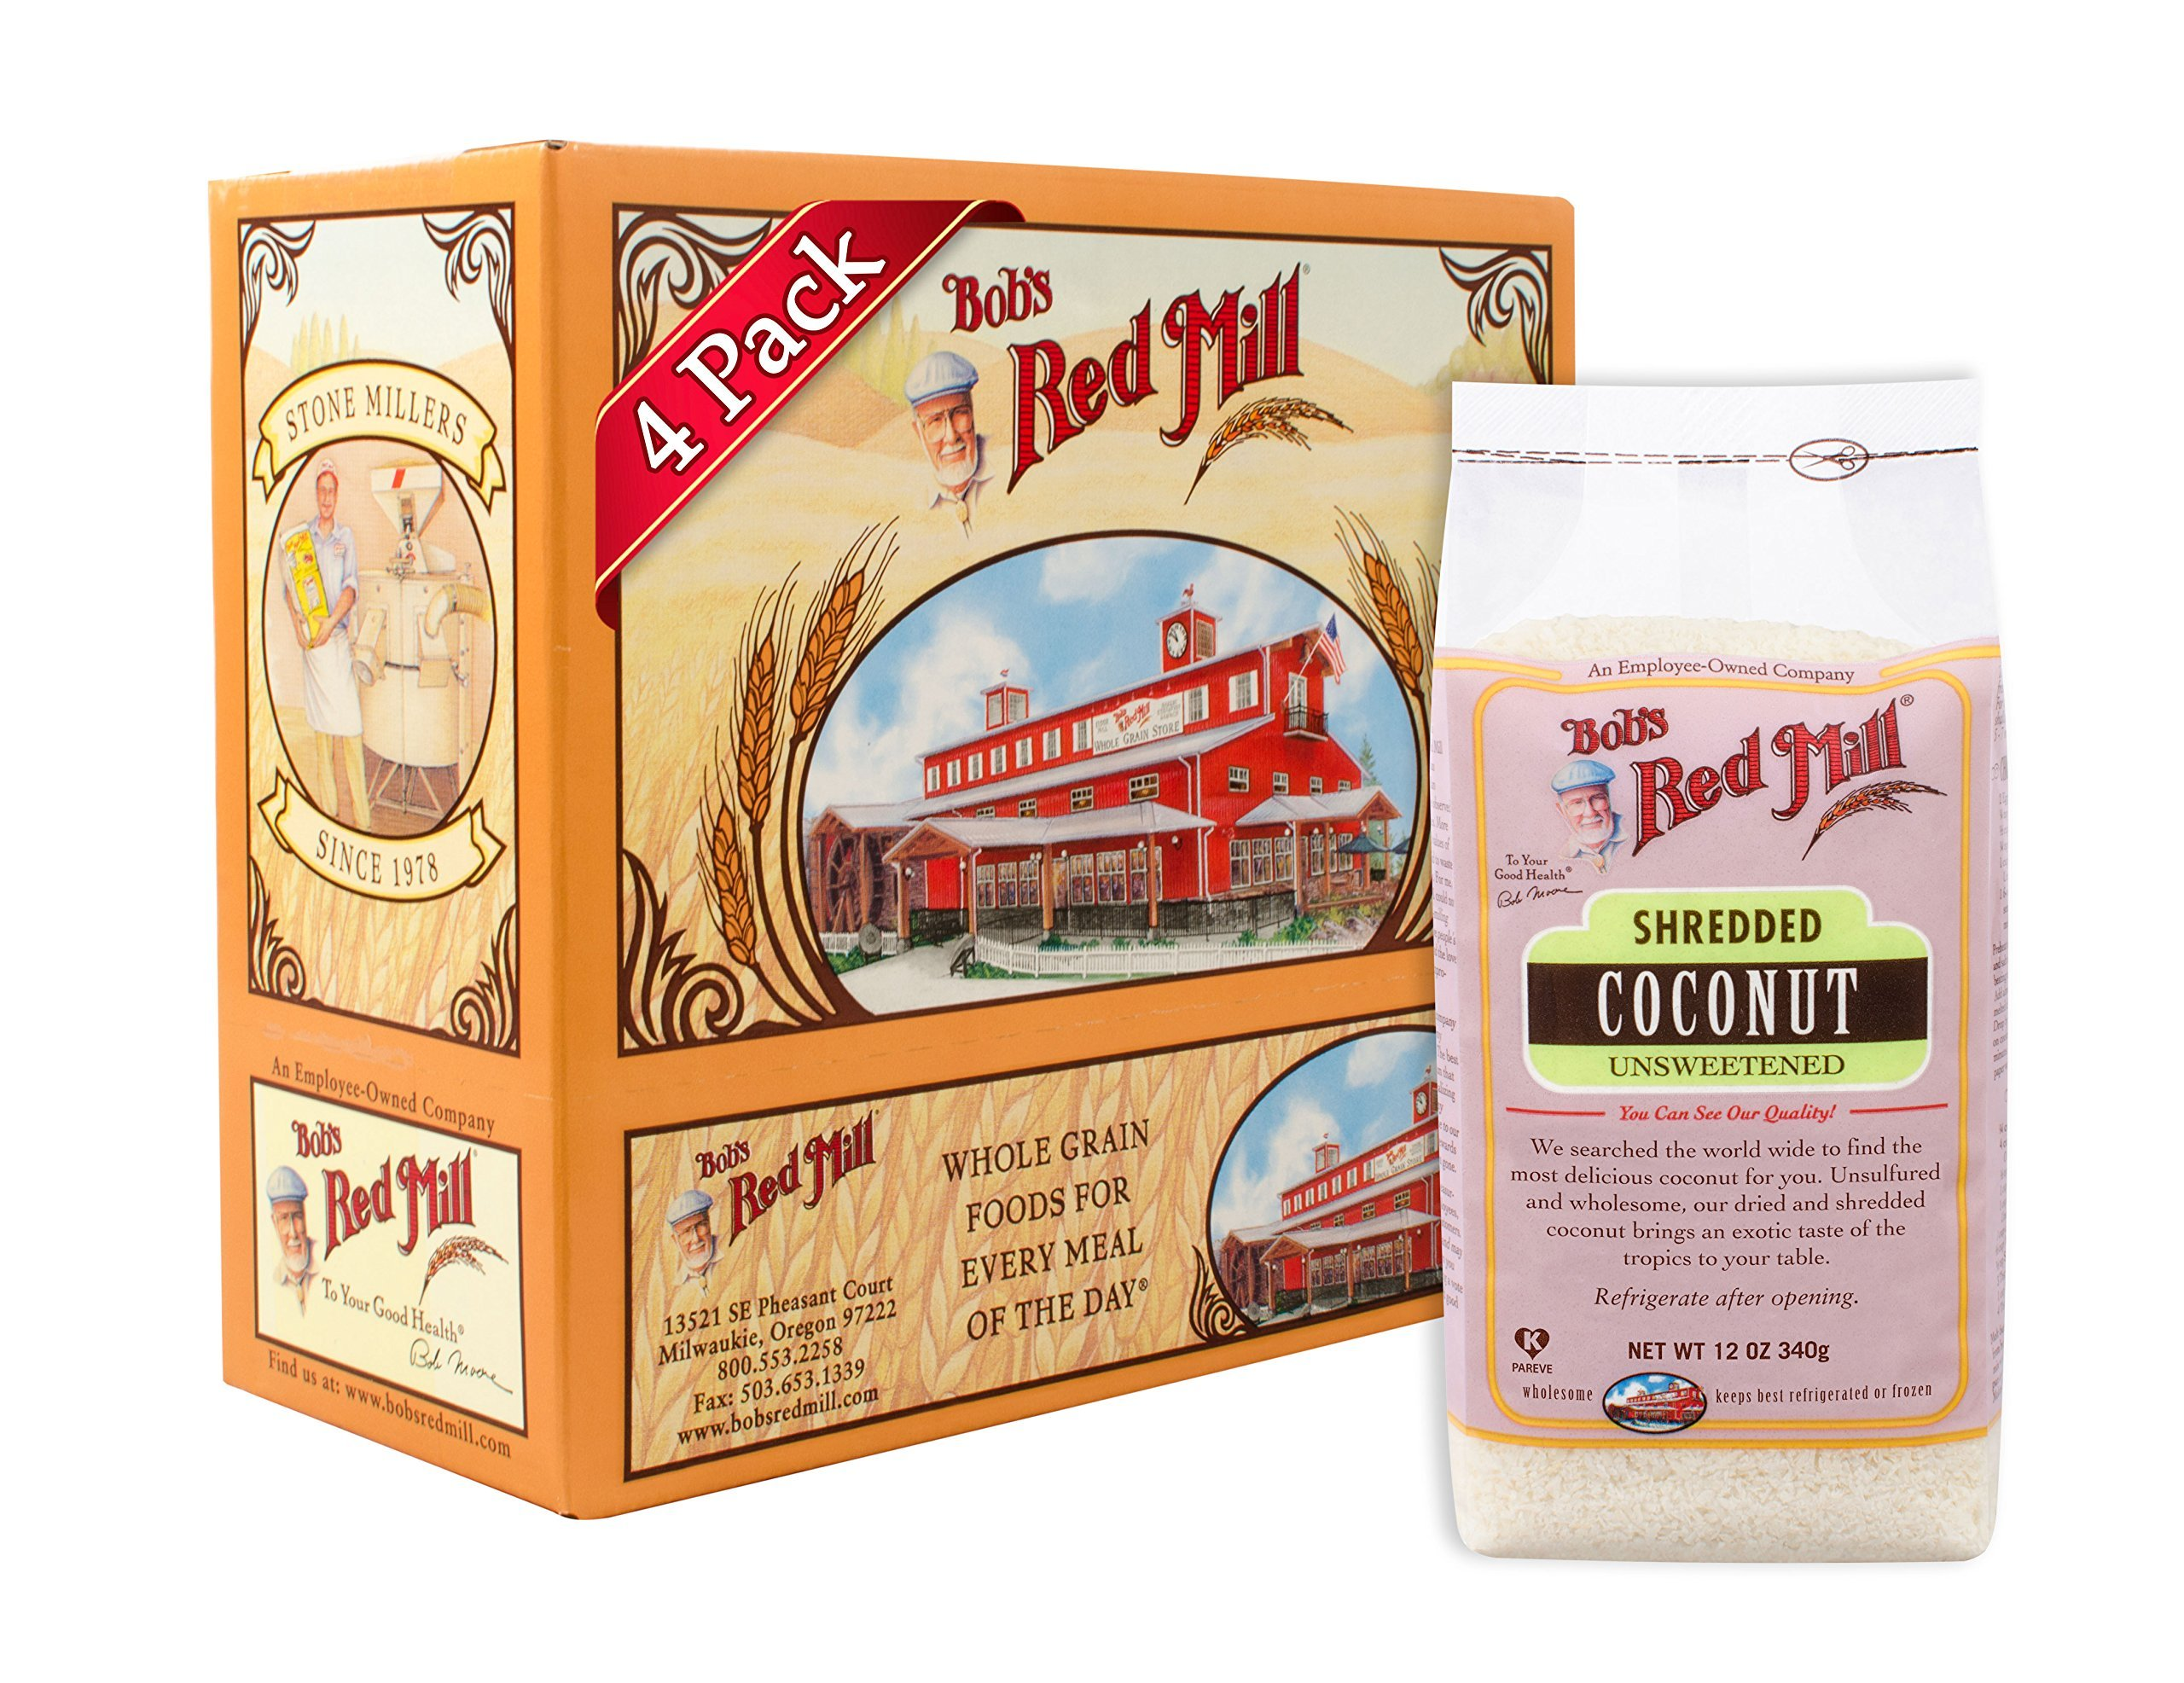 Bob's Red Mill Shredded Coconut (Unsweetened), 12-ounce (Pack of 4)